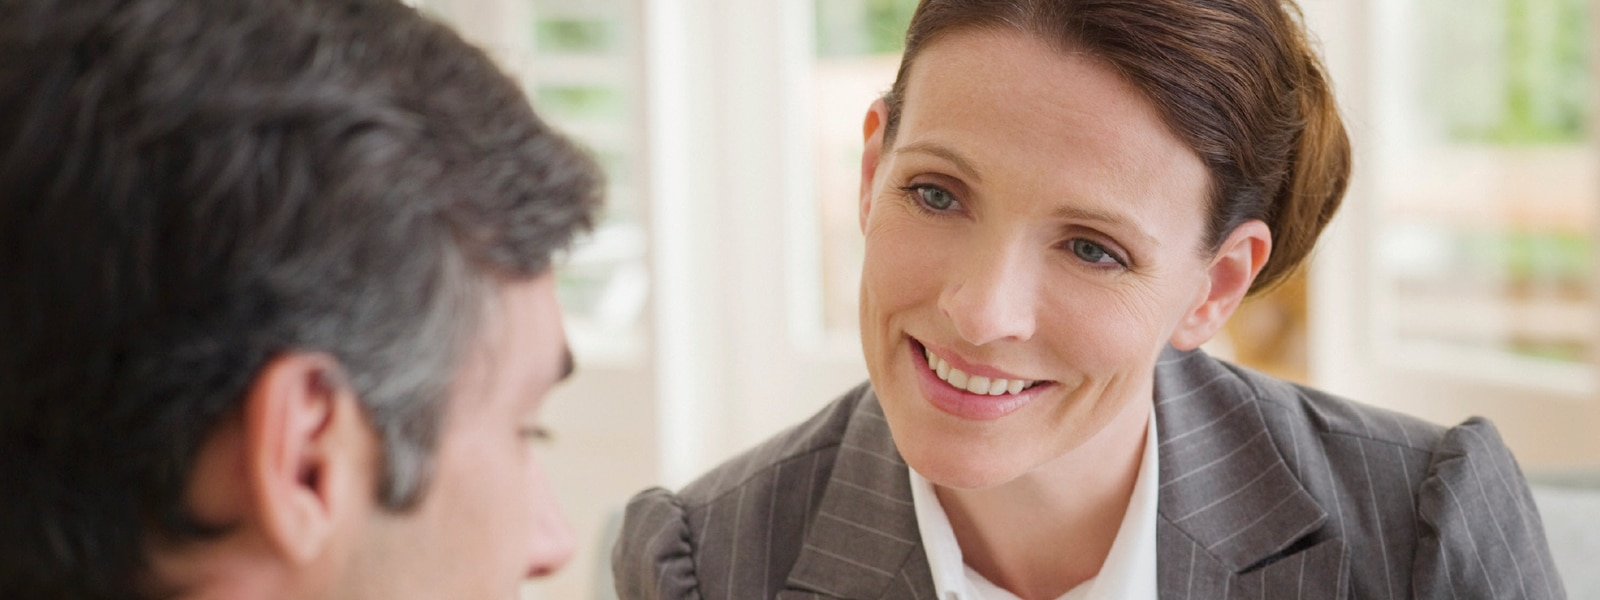 female advisor talking to a client